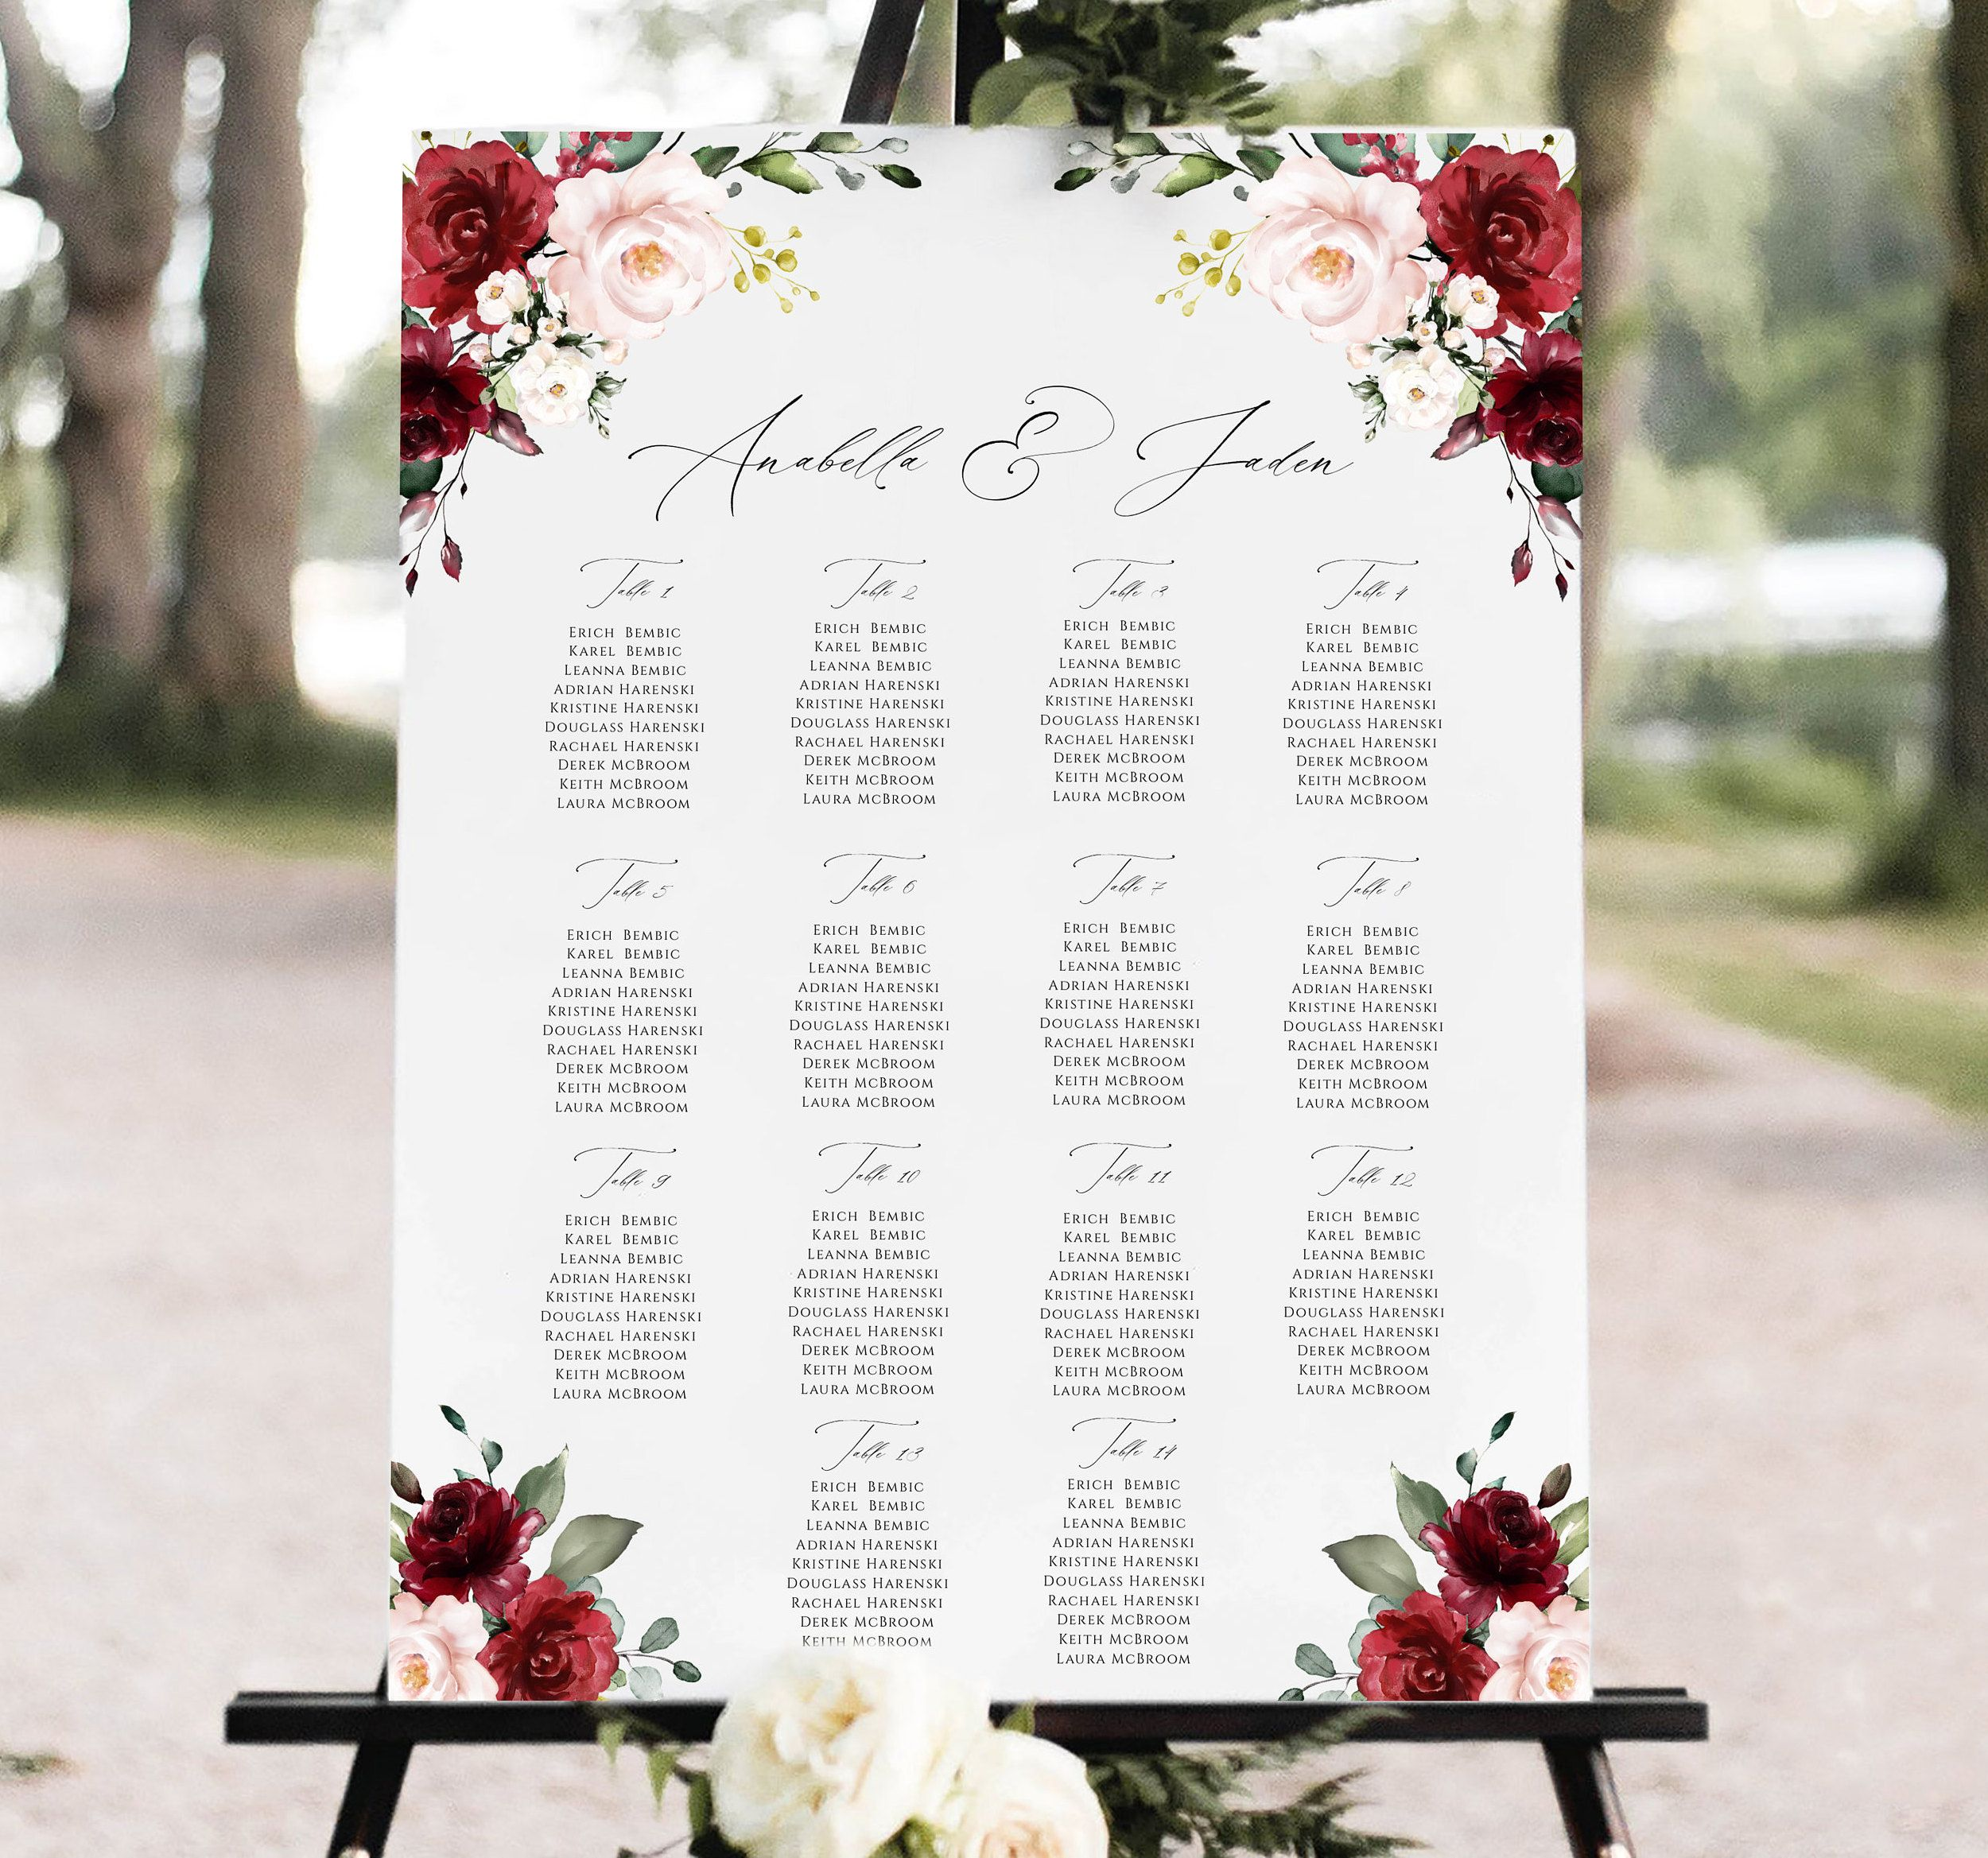 Wedding seating chart template, Fully Editable, Burgundy Wedding Seating Chart Board, Editable Seating Chart Poster, Templett #excelwordaccessetc